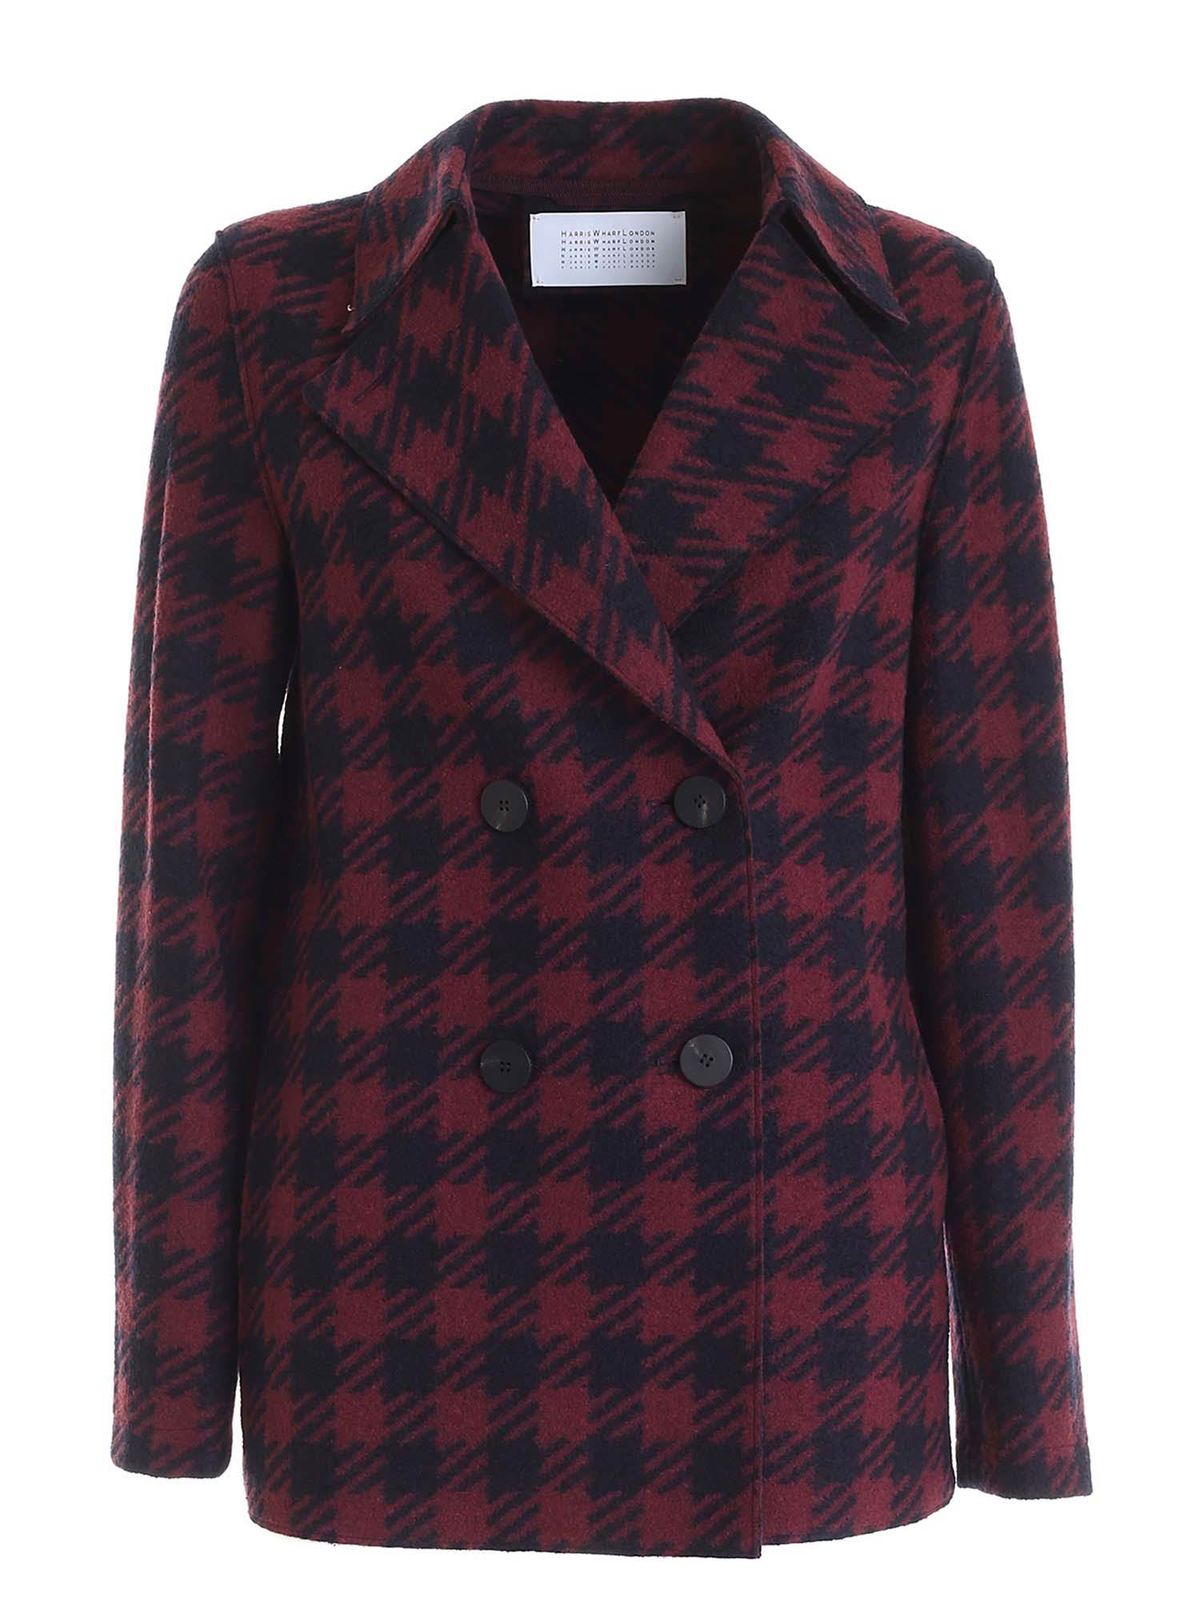 Harris Wharf London HOUNDSTOOTH JACKET IN BLUE AND BURGUNDY COLOR